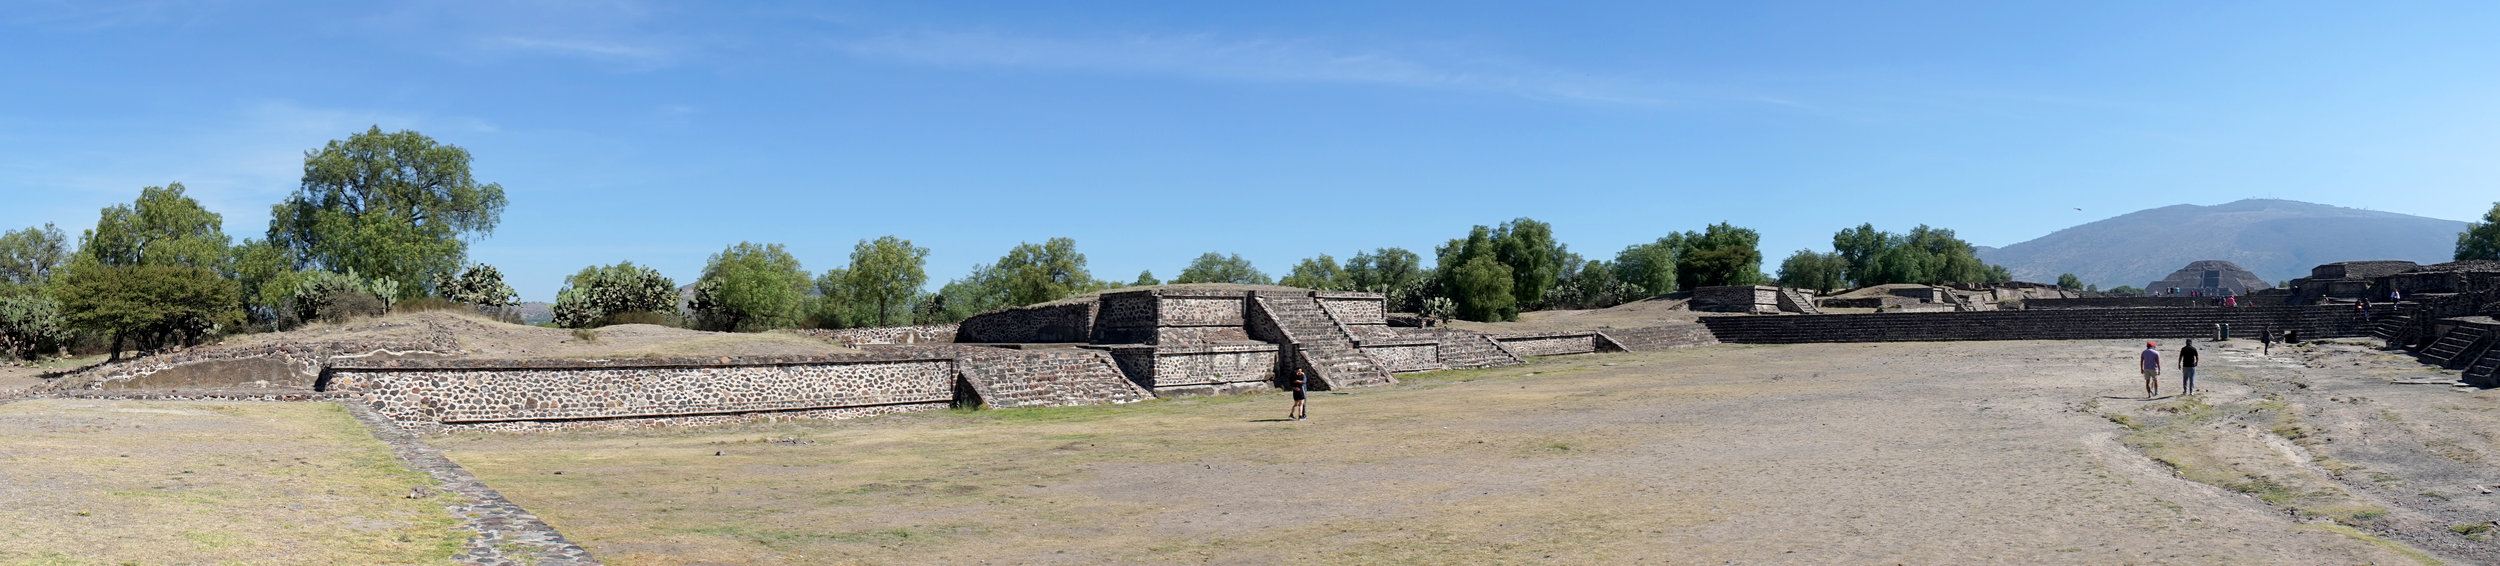 Krity S Mexico City Teotihuacan